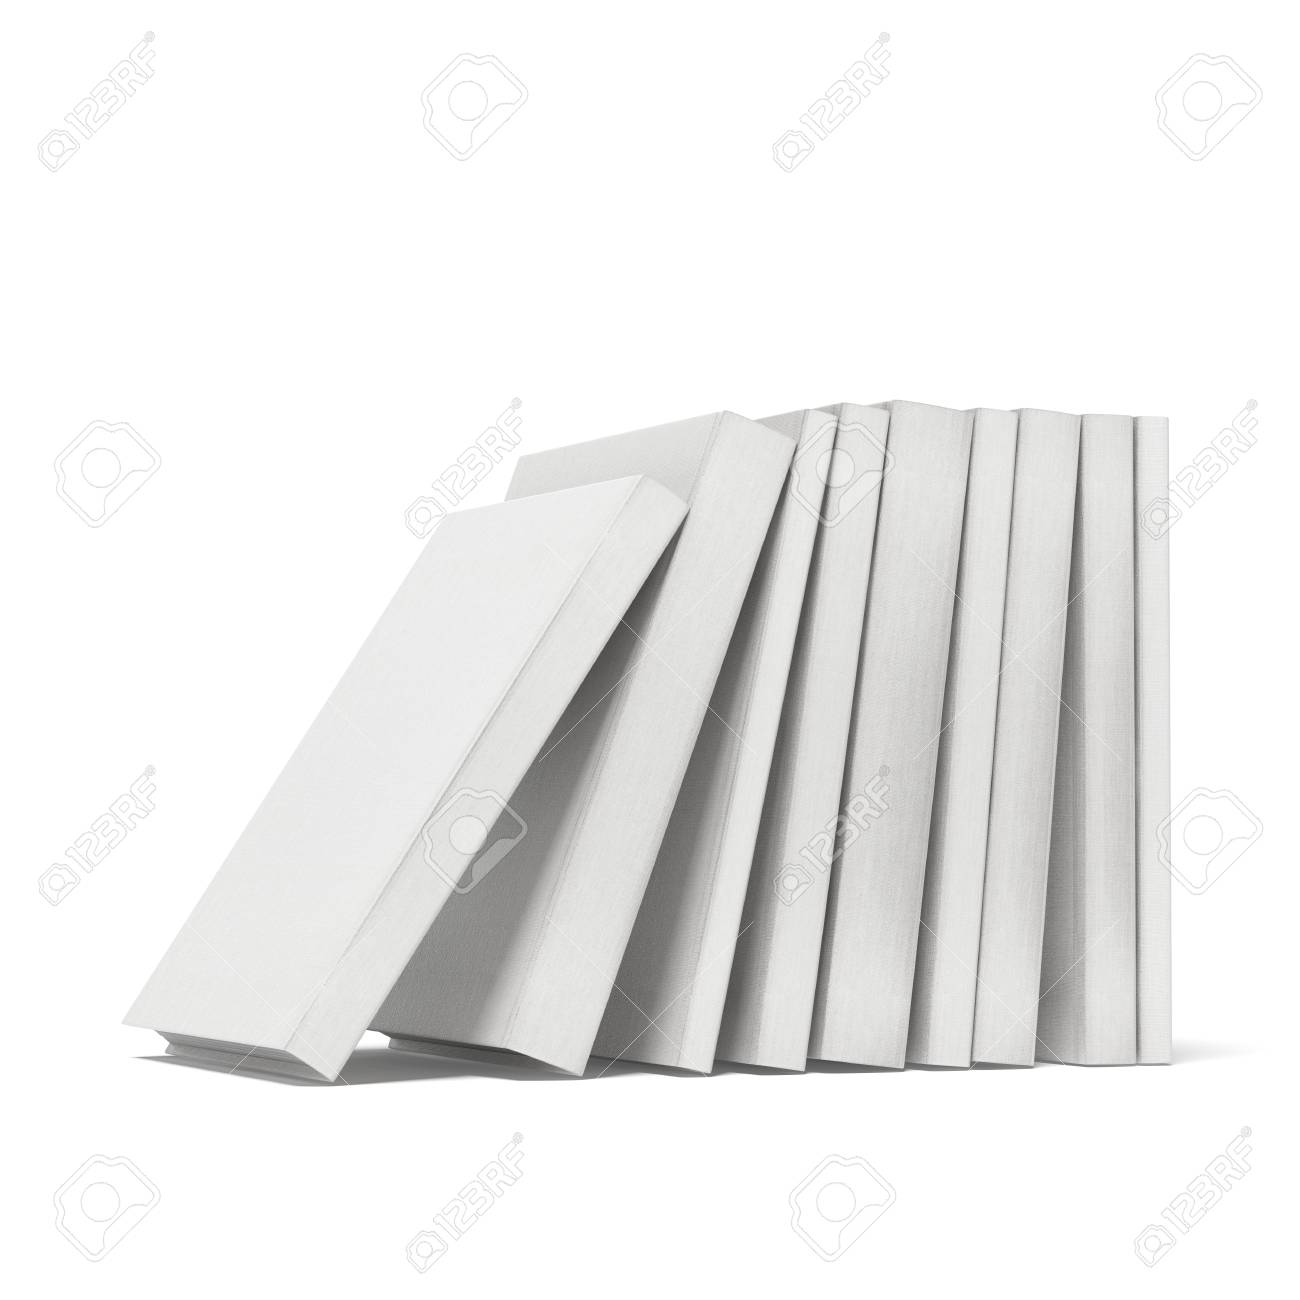 white books  isolated on a white background Stock Photo - 22403415